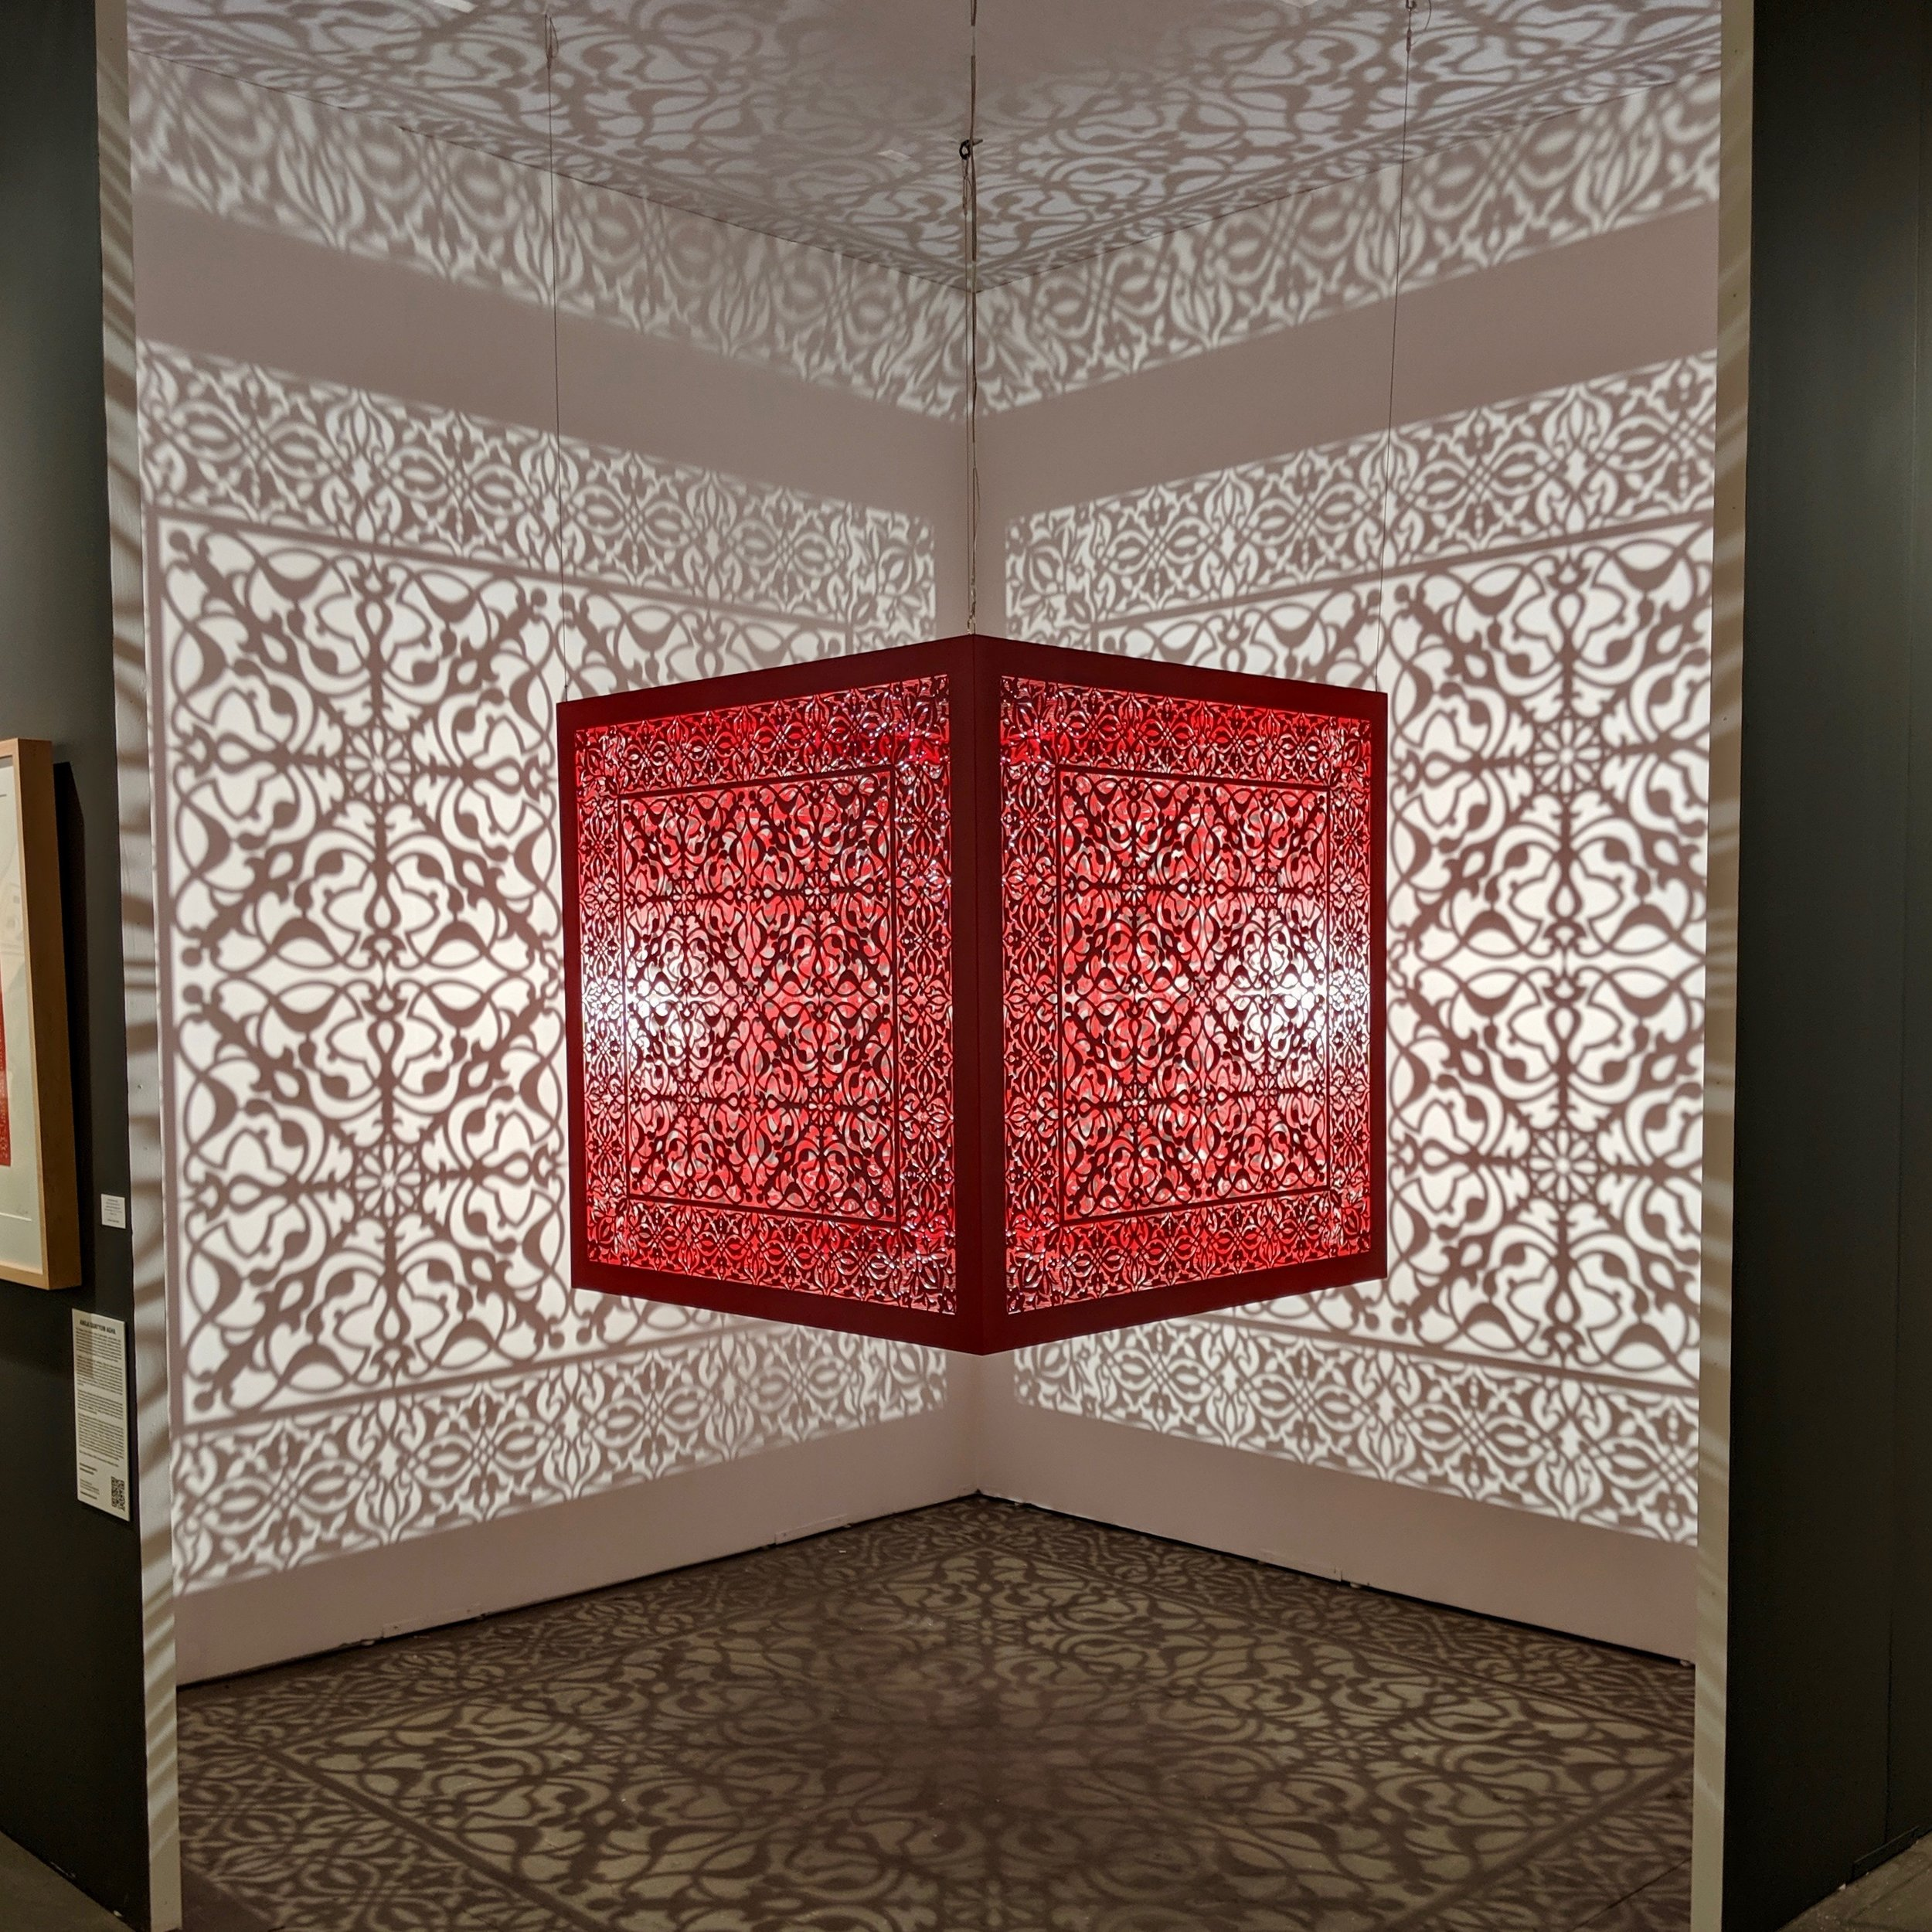 Anila Quayyum Agha, Shimmering Mirage [red], 2019 / courtesy Sundaram Tagore Gallery